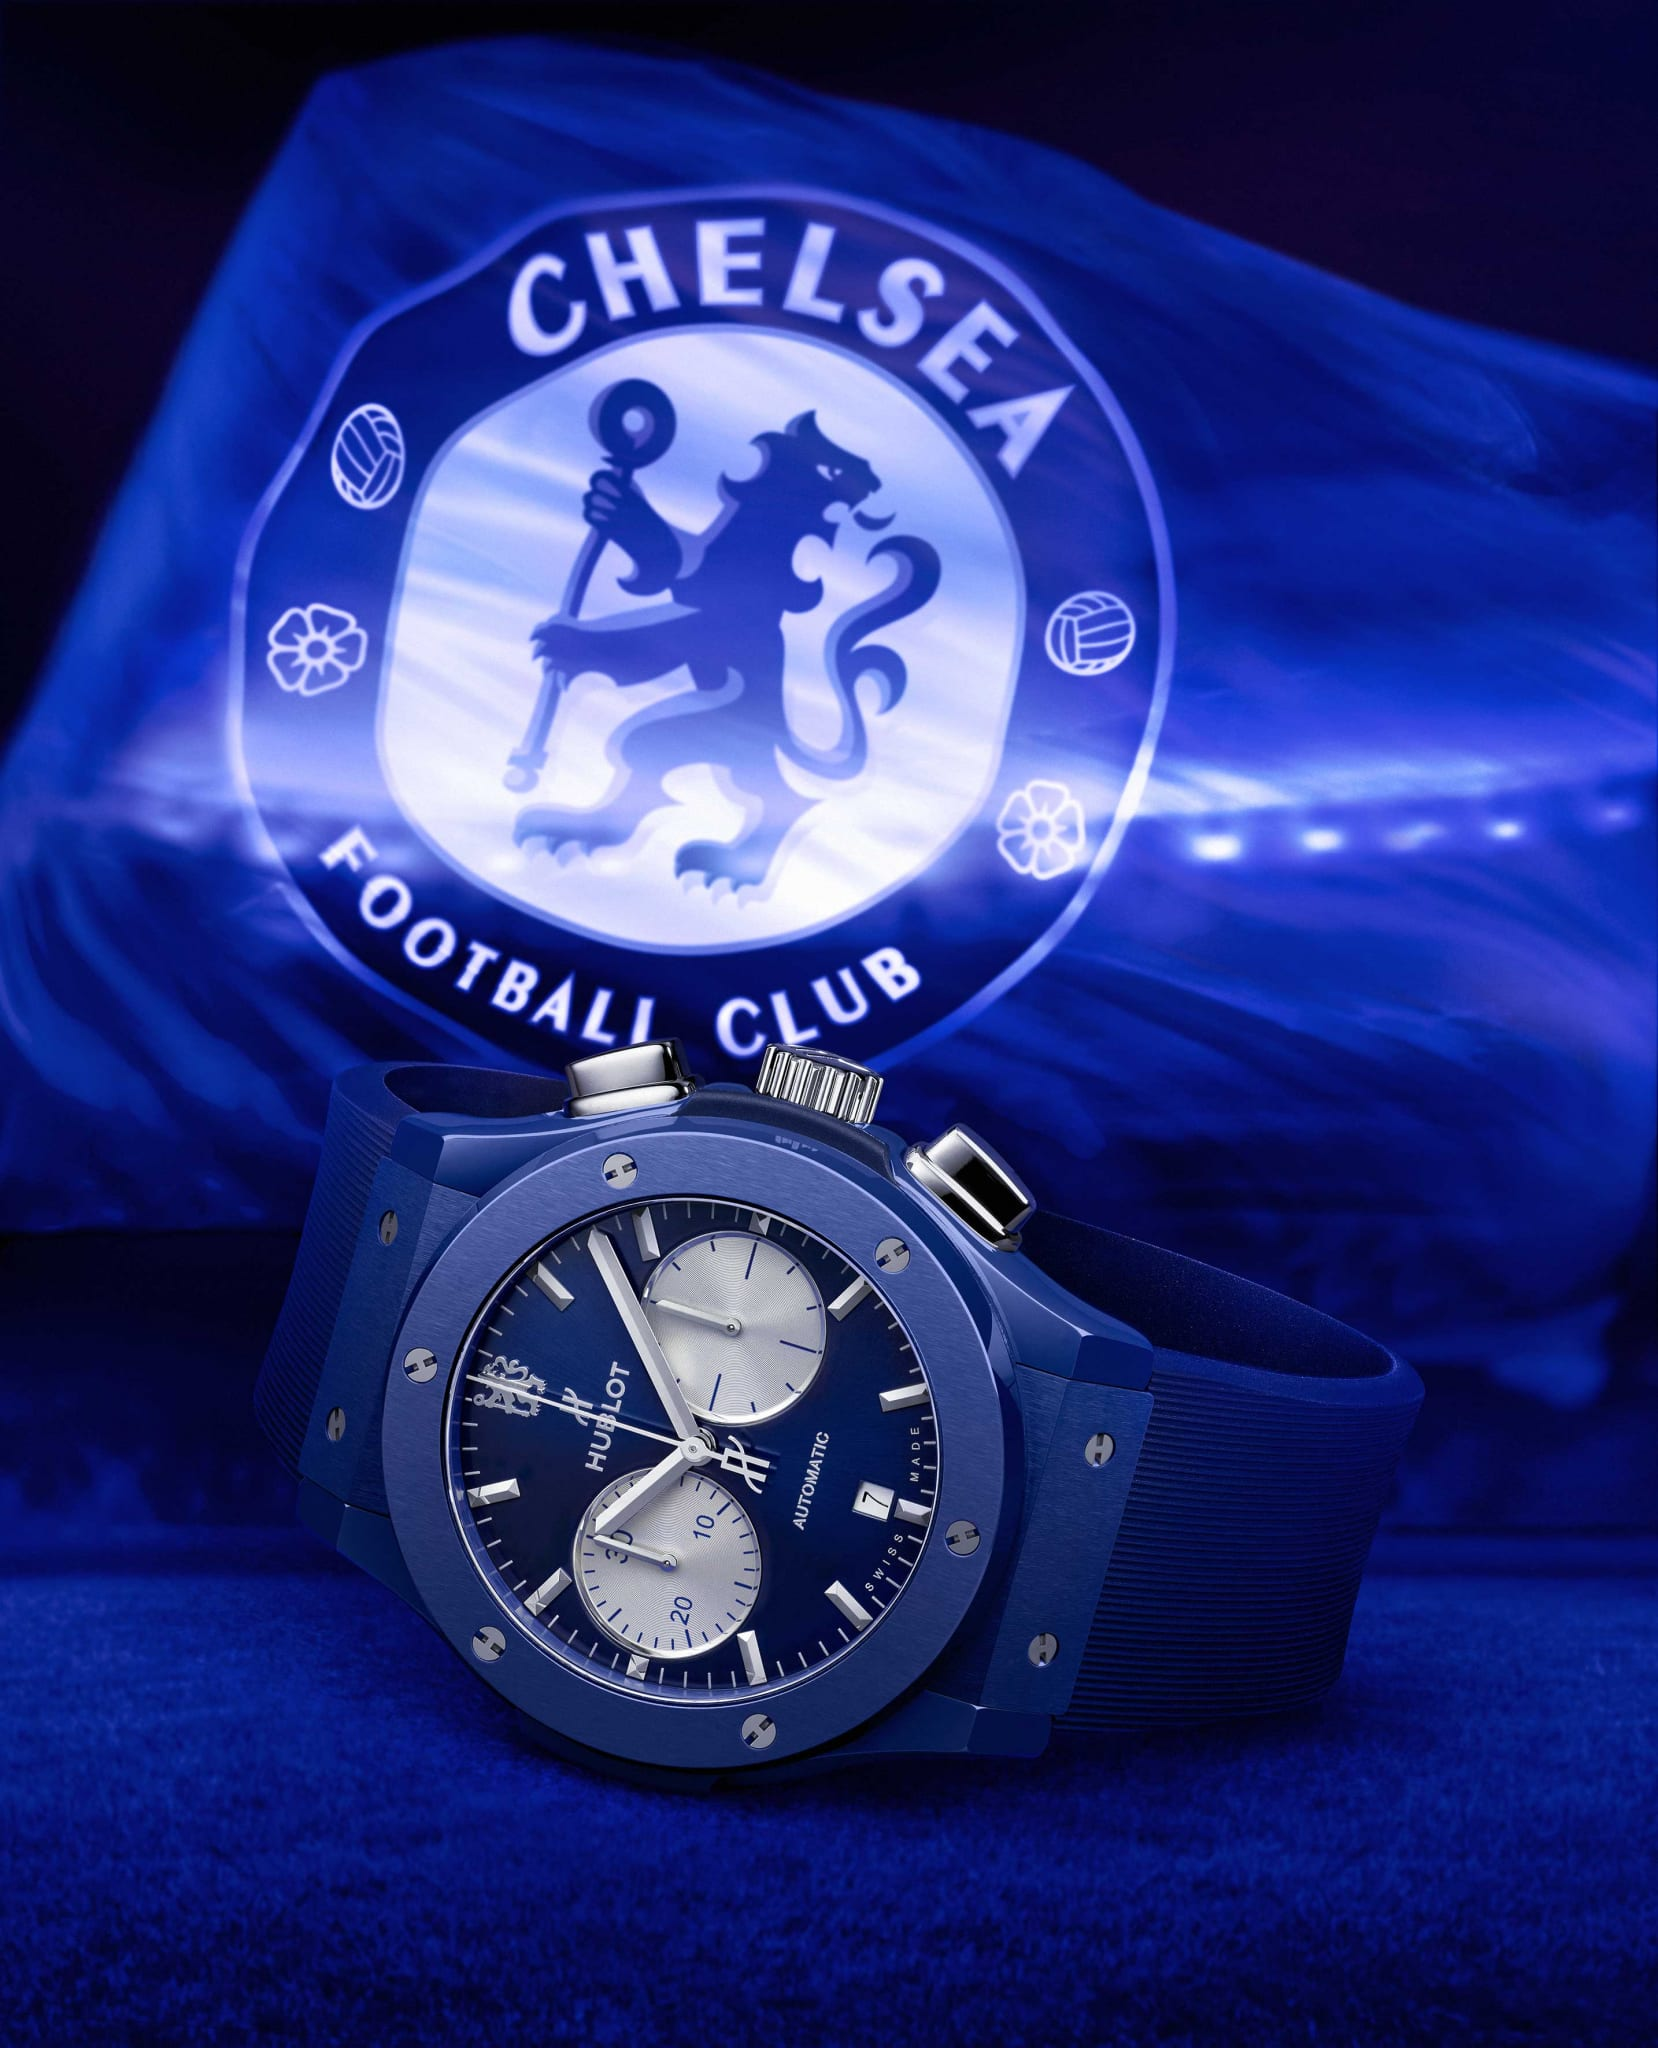 Hublot and Chelsea FC celebrate ongoing partnership with a third limited edition watch